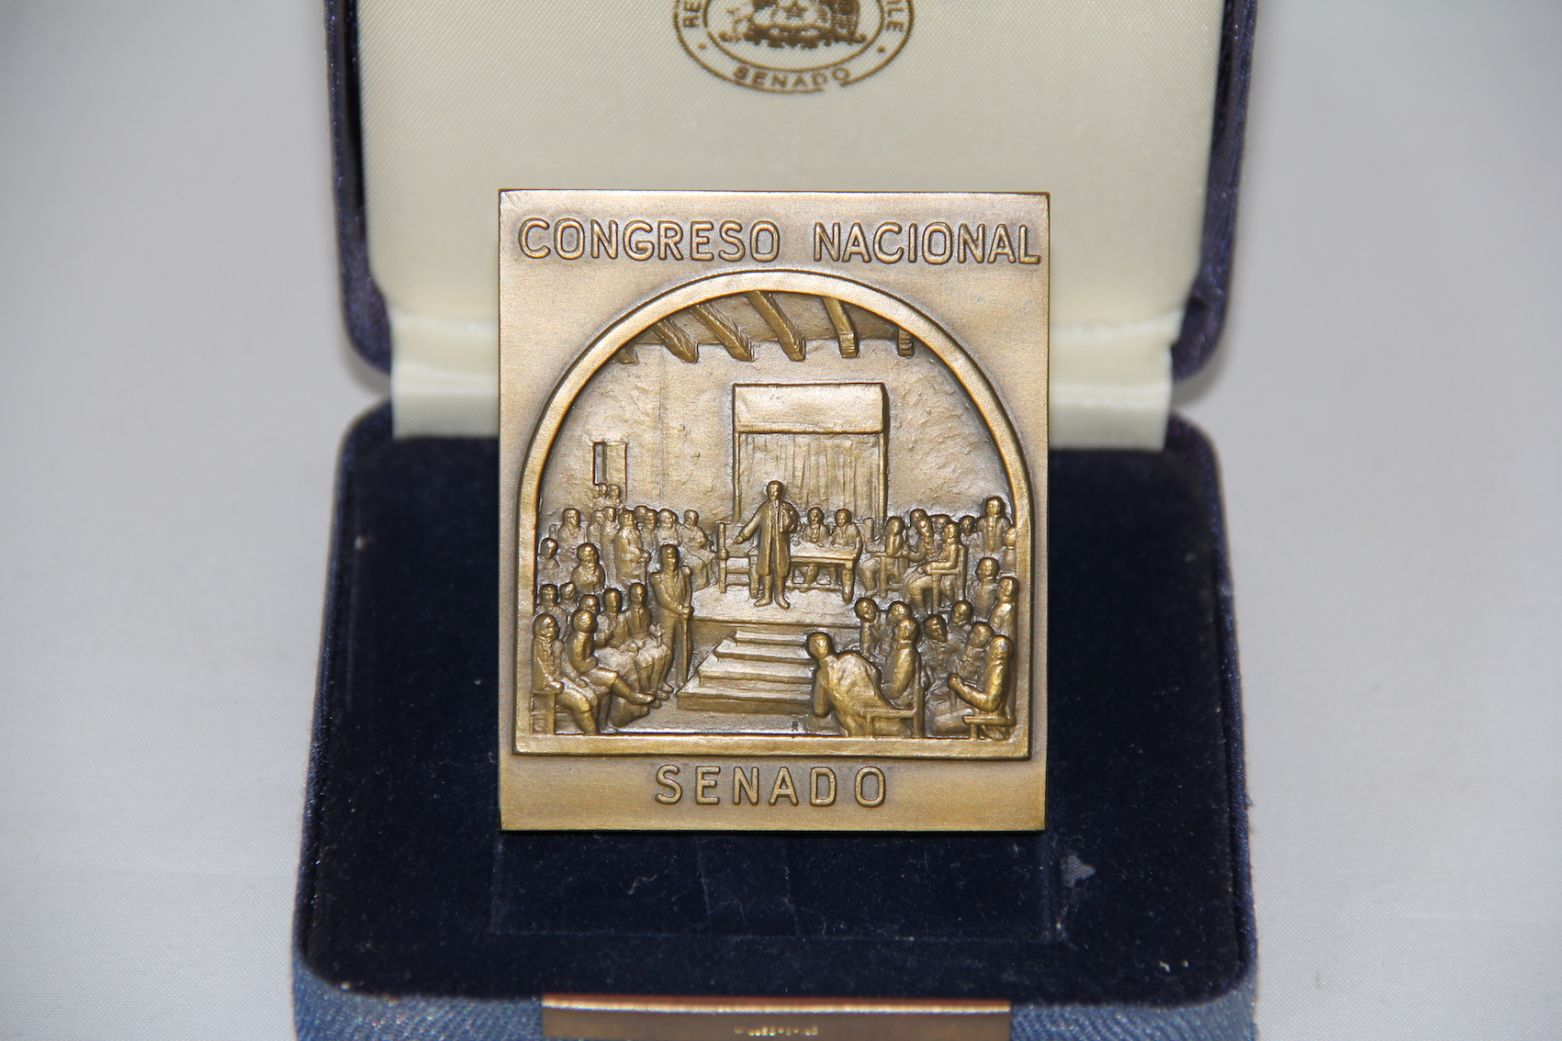 5bae3c1a2764c-medalha-do-congresso-nacional-do-chile-1-.jpg